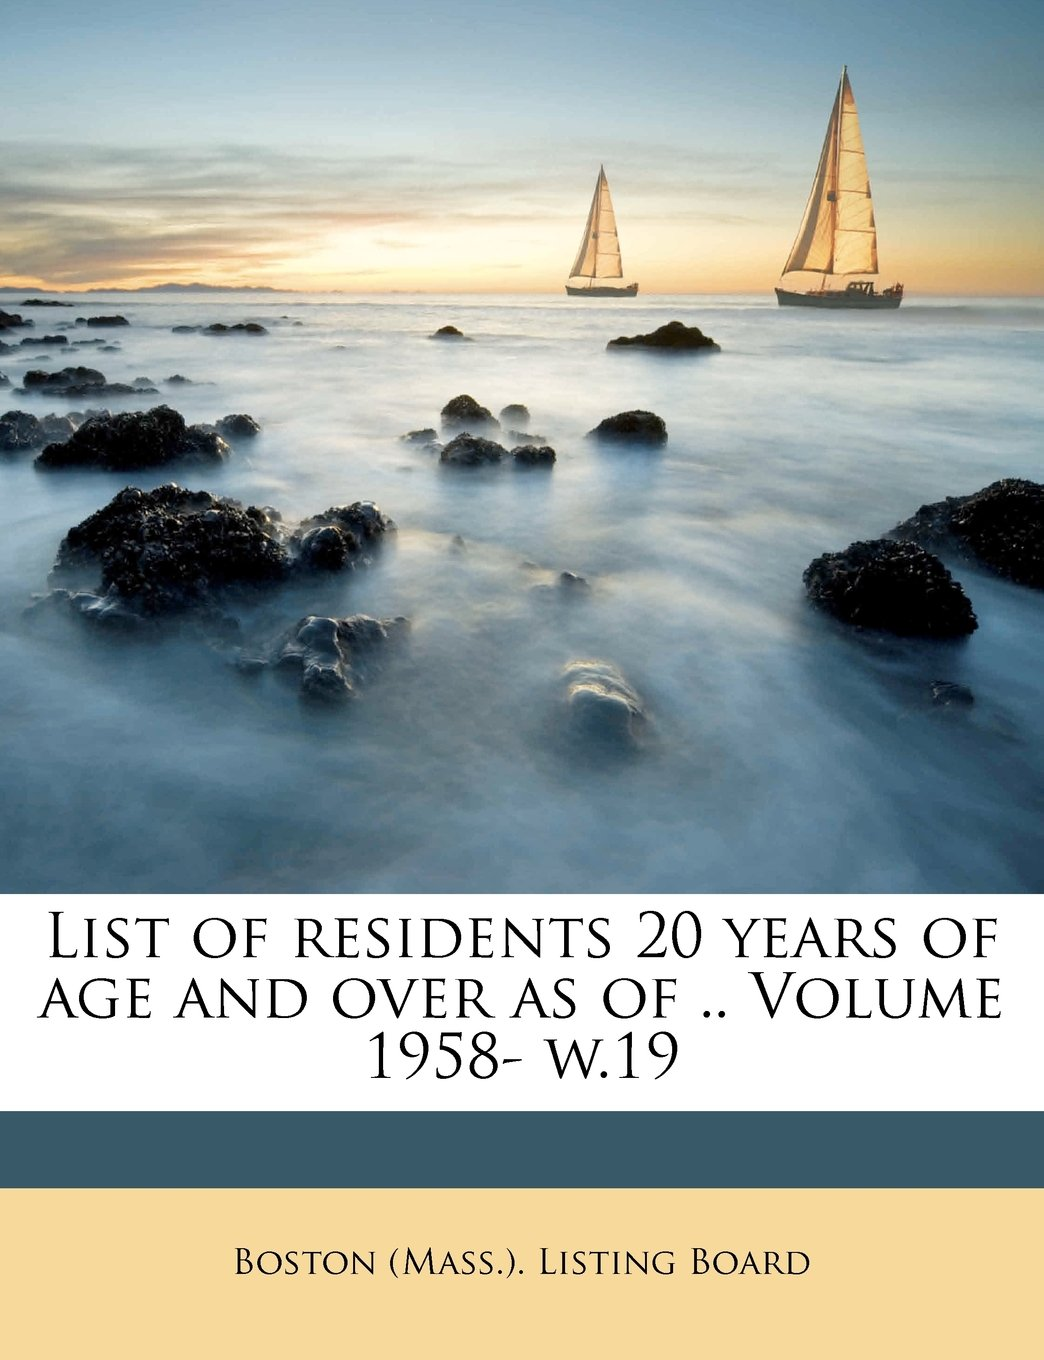 List of residents 20 years of age and over as of .. Volume 1958- w.19 PDF